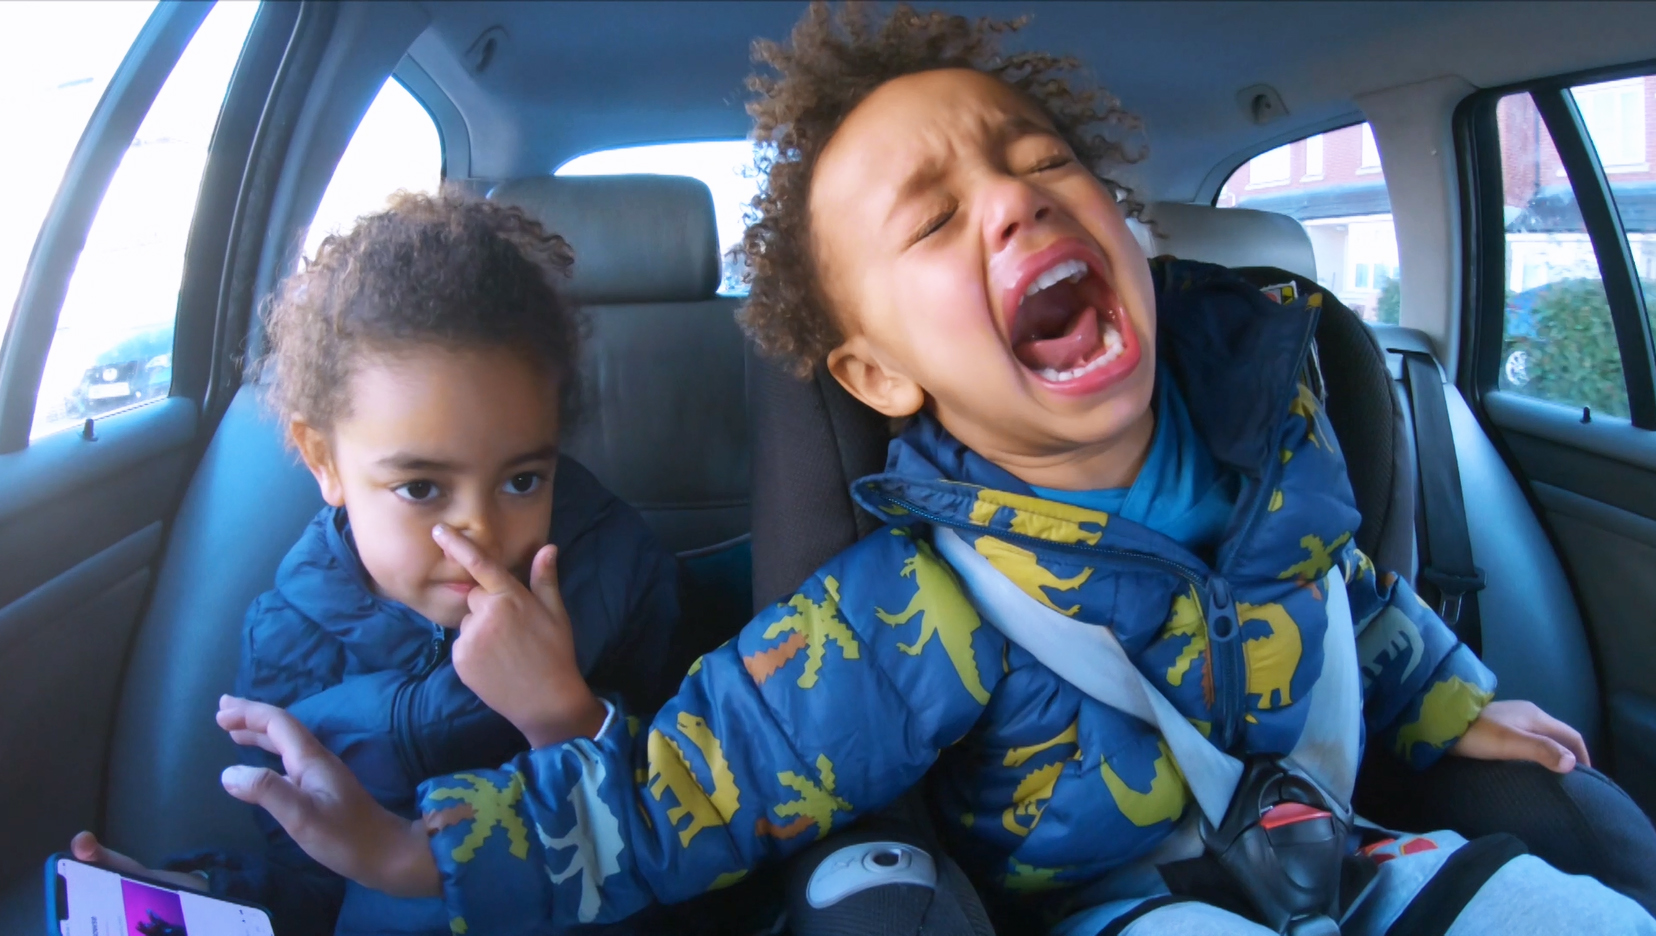 Two brothers screaming in the car